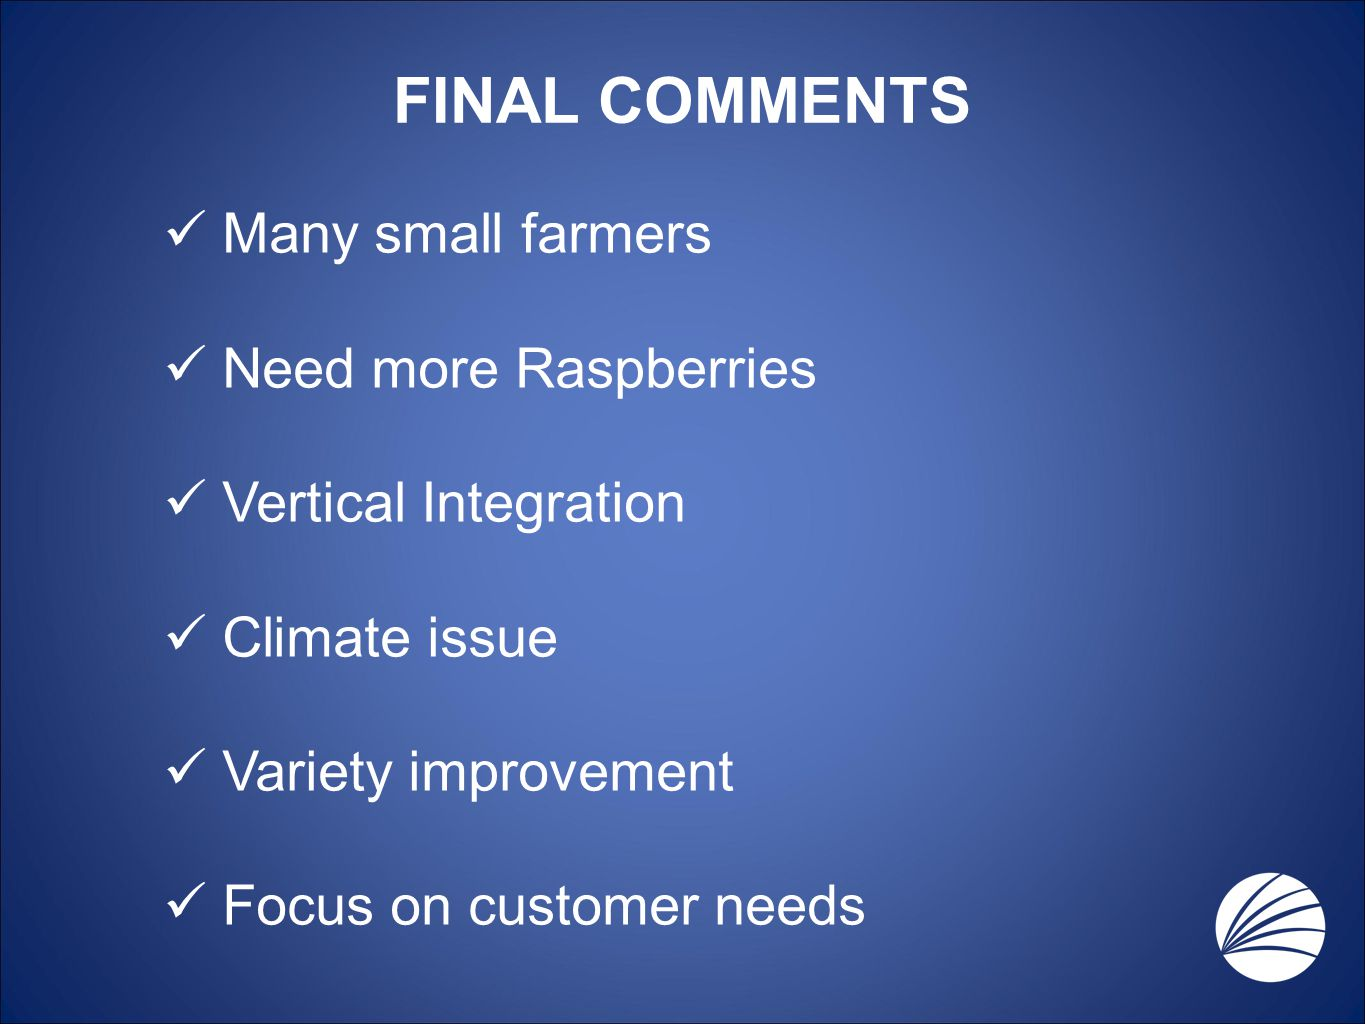 FINAL COMMENTS Many small farmers Need more Raspberries